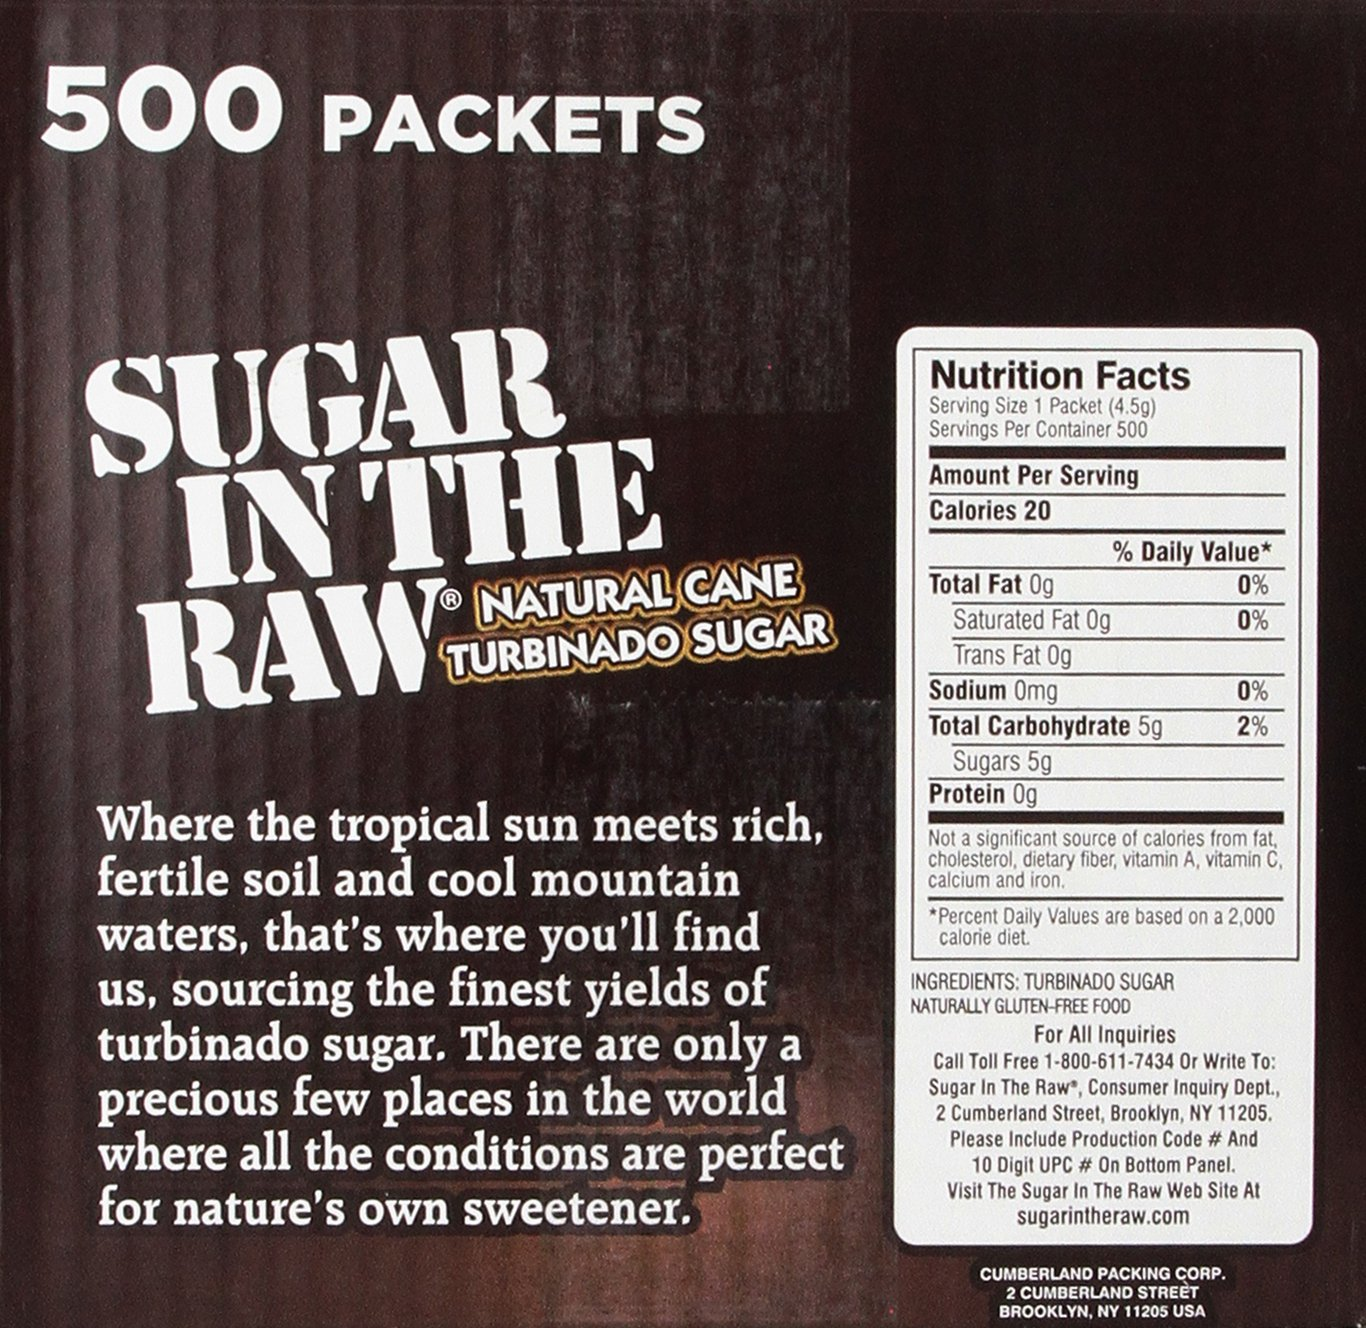 Amazoncom Sugar in the RawRaw Sugar Natural Cane Turbinado